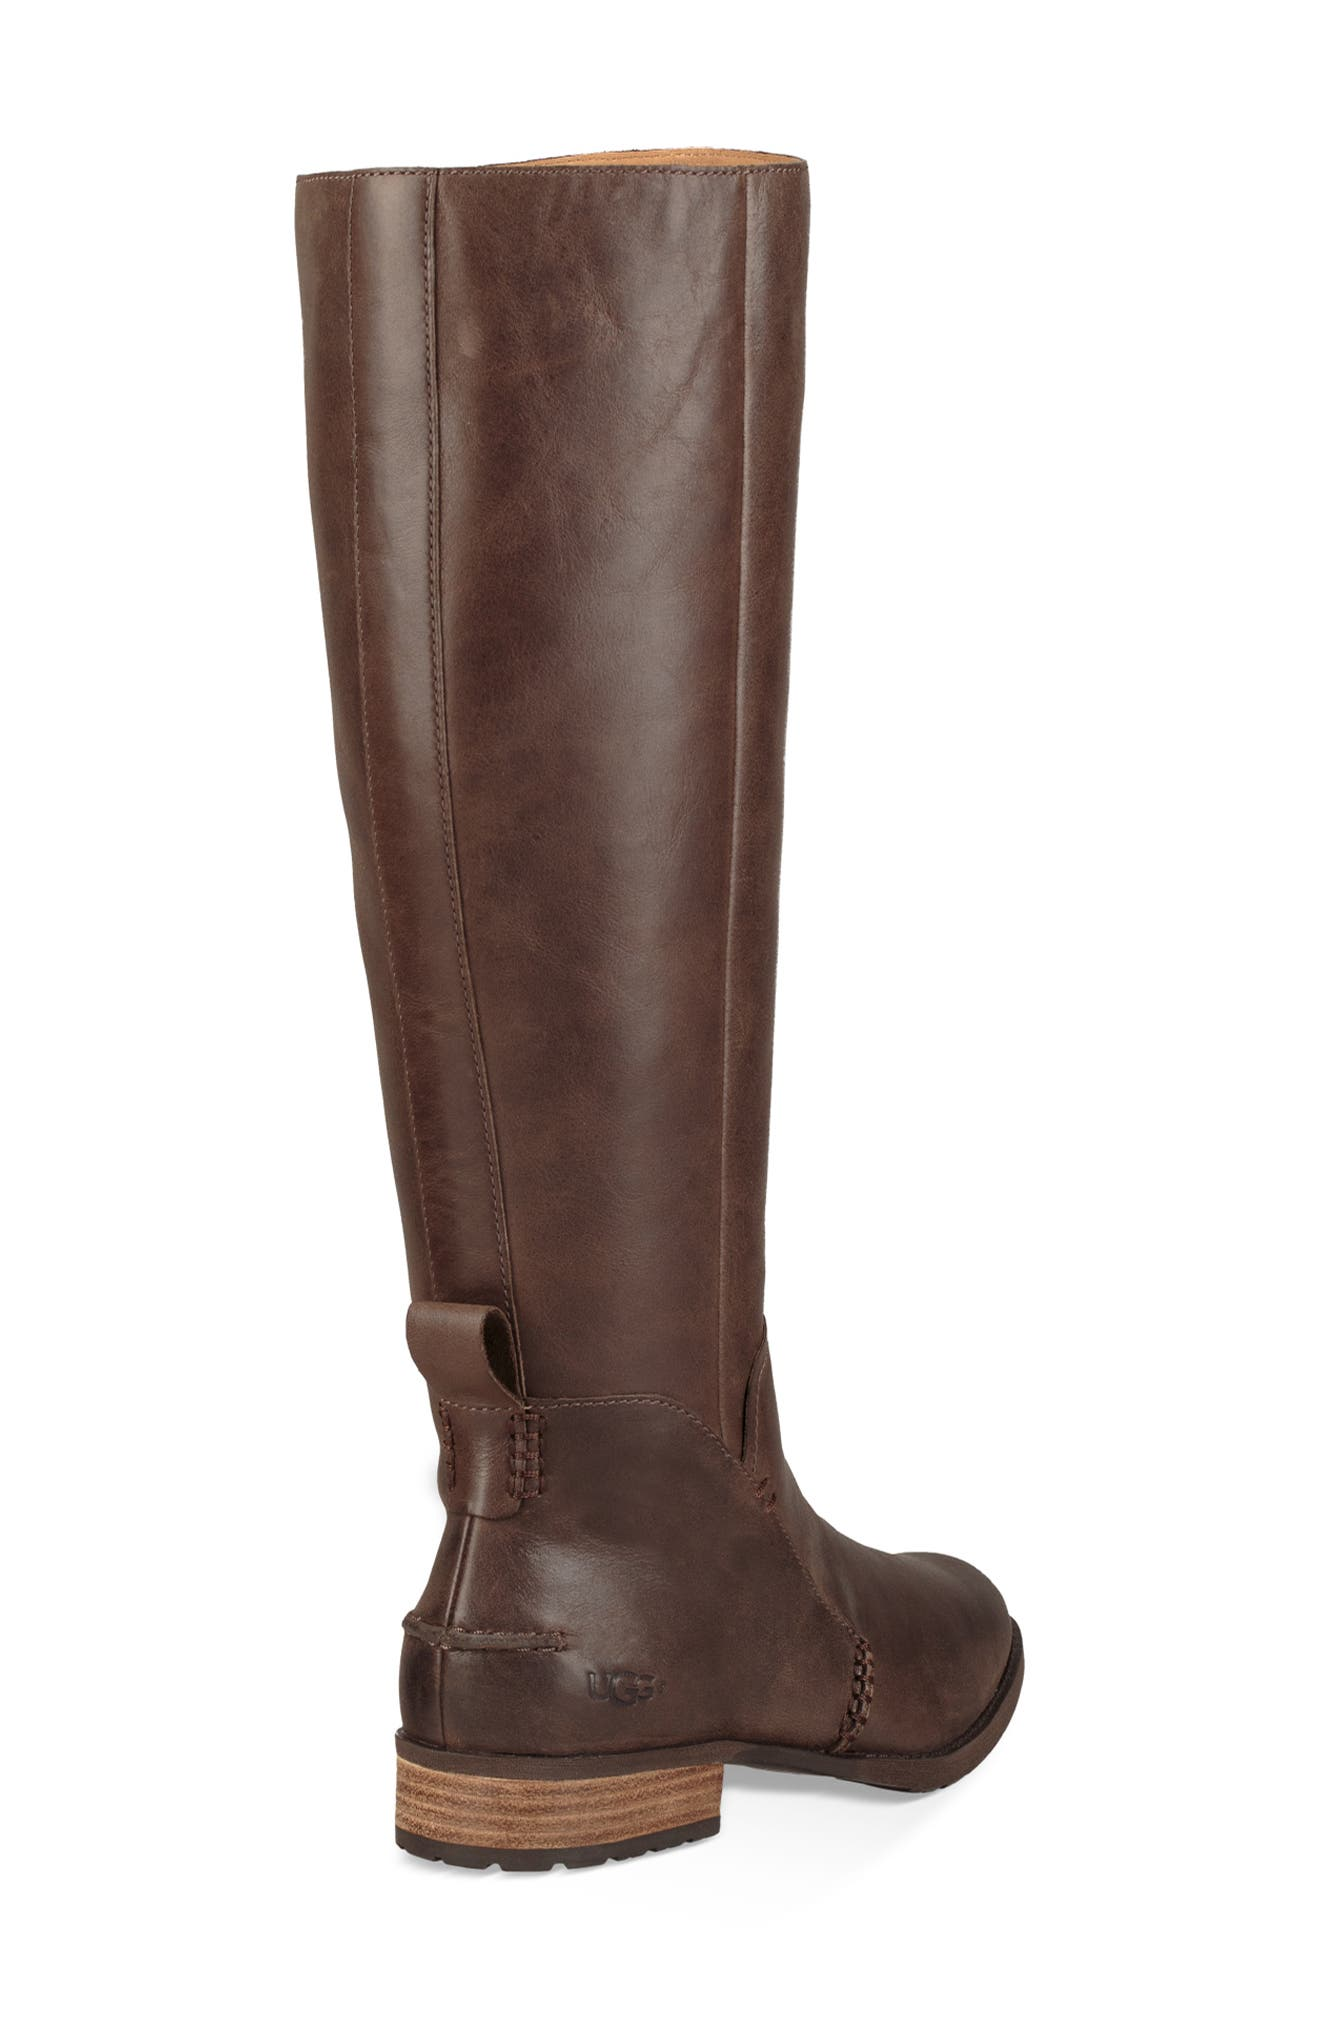 Leigh Knee High Riding Boot,                             Alternate thumbnail 2, color,                             DARK BROWN LEATHER